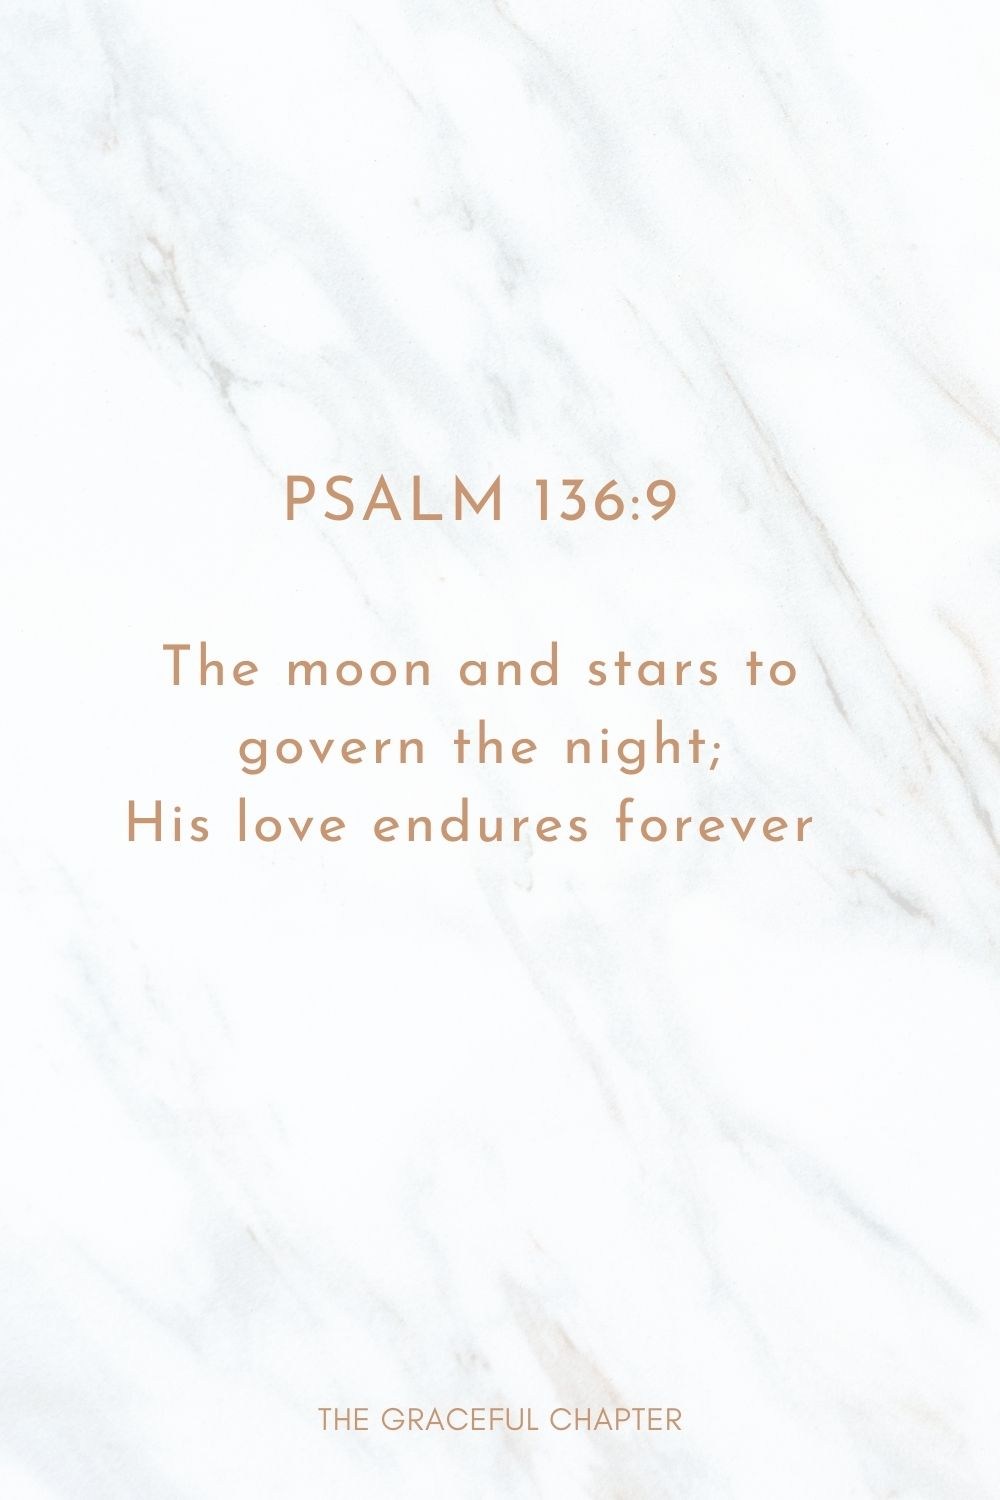 The moon and stars to govern the night; His love endures forever  Psalm 136:9